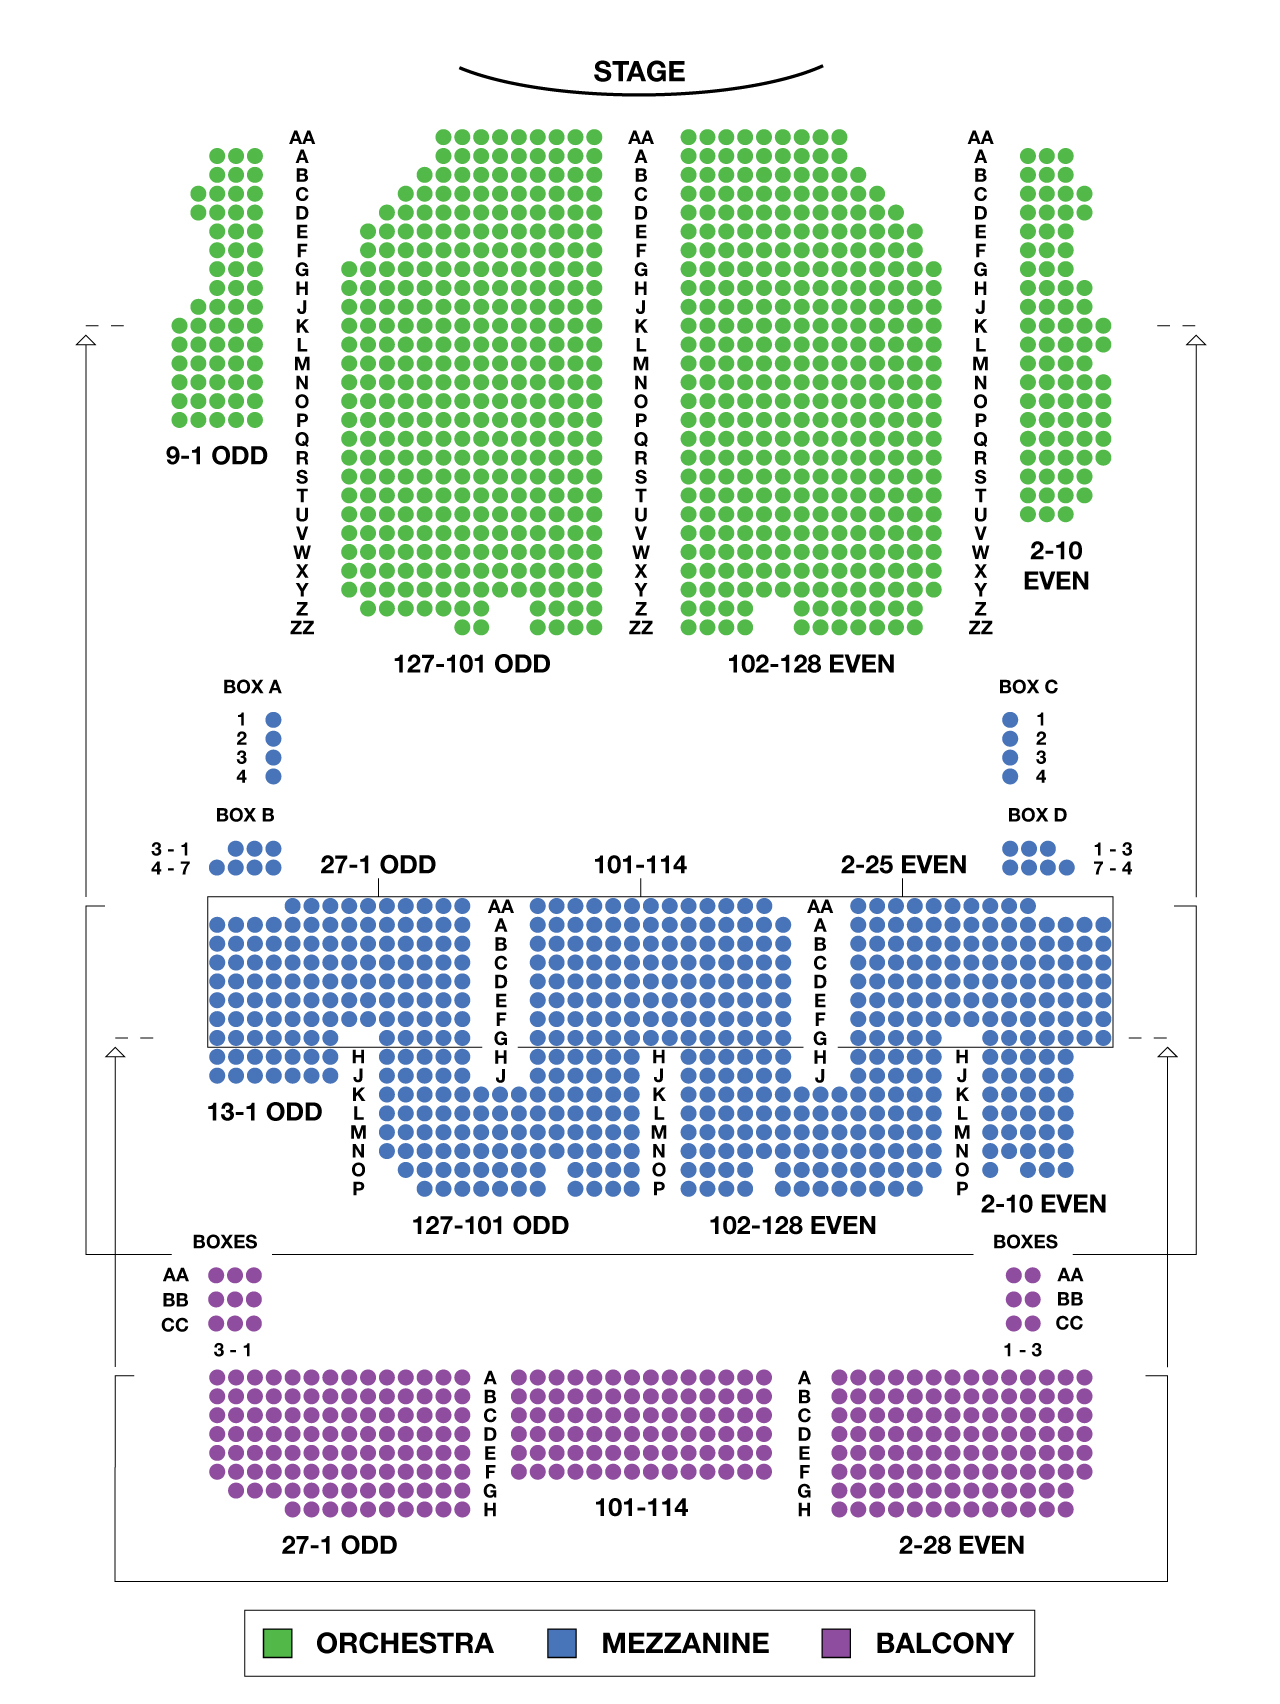 Palace Theatre Large Broadway Seating Charts